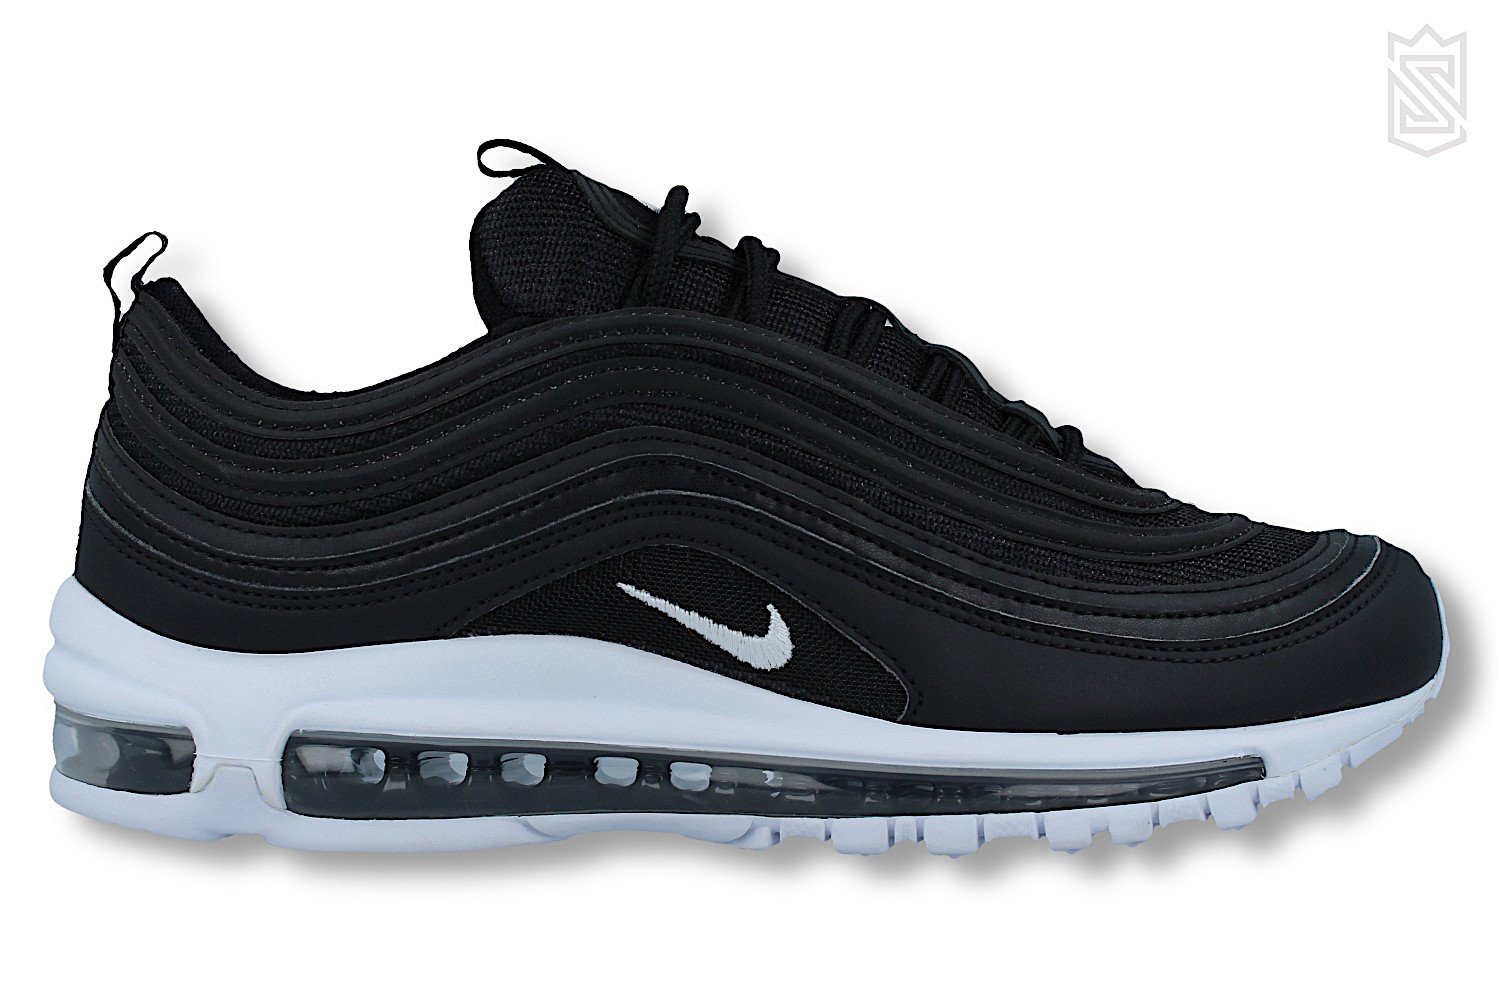 nike air max 97 kinder günstig